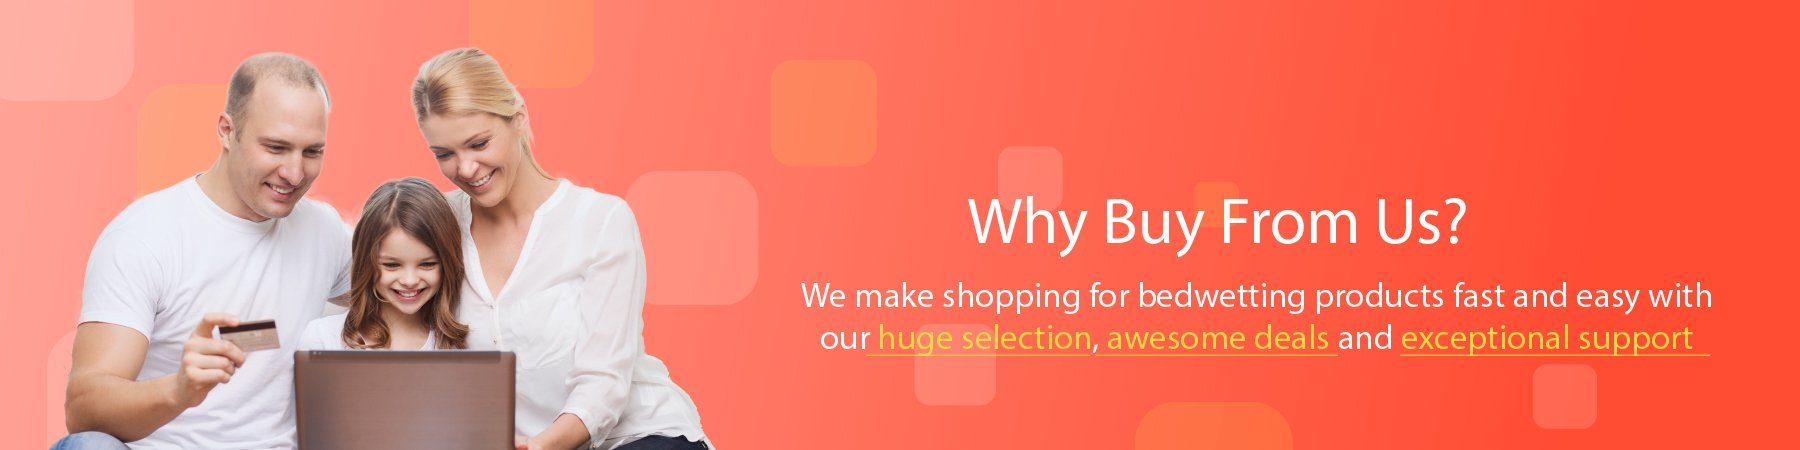 One Stop Bedwetting - Why Buy From Us?